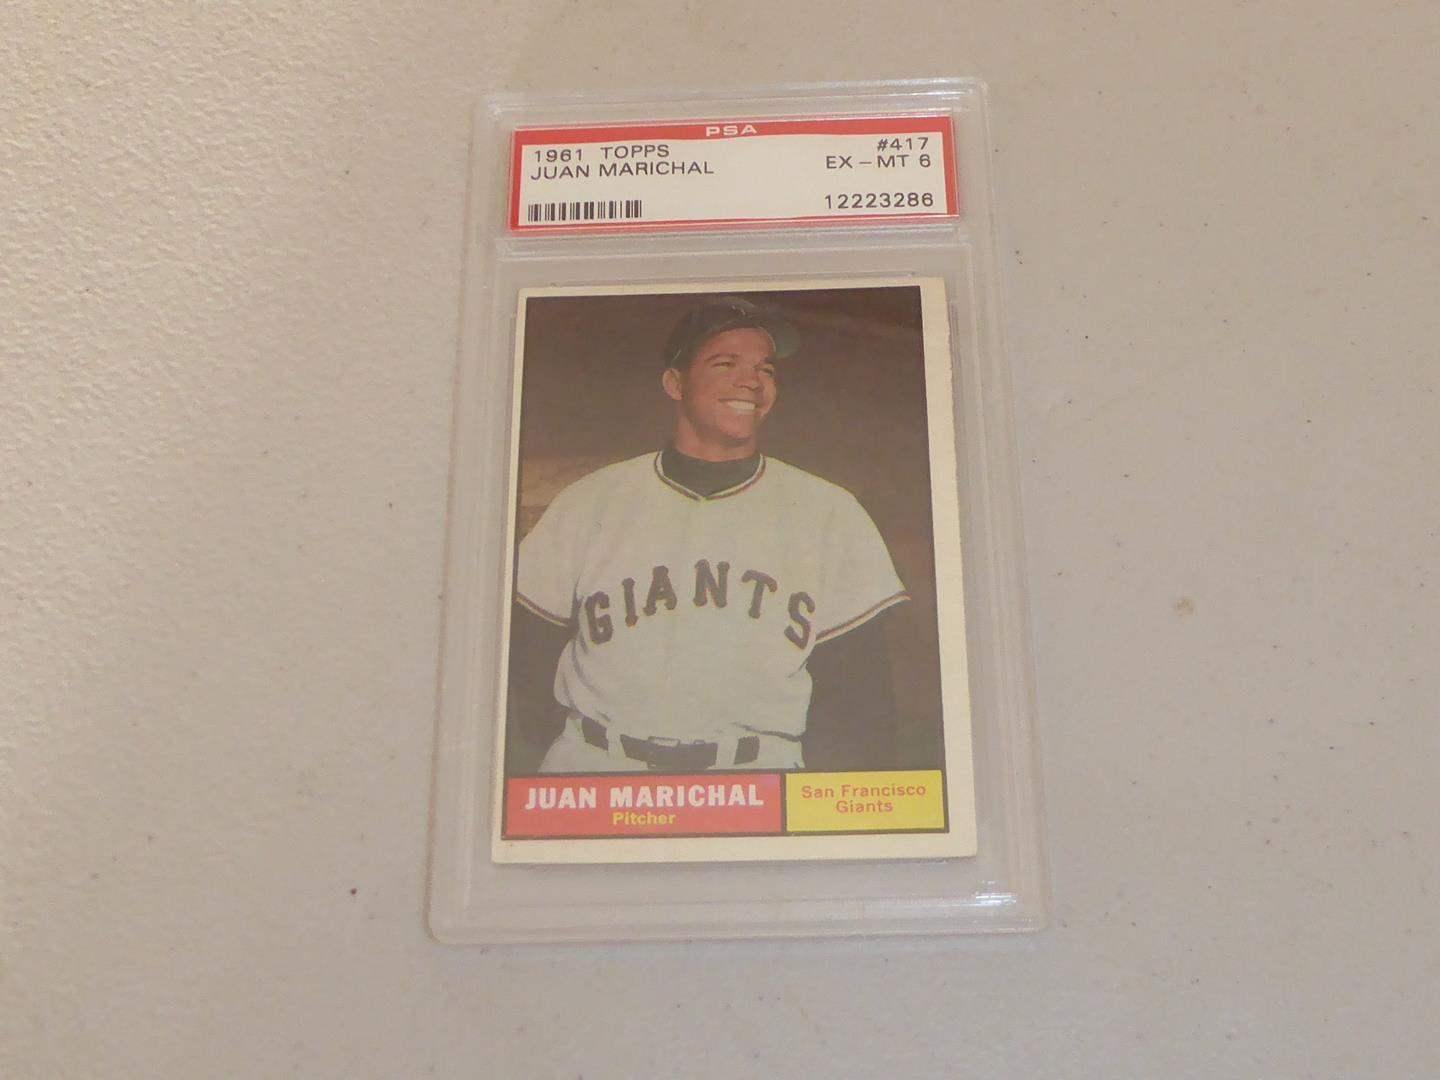 Lot # 183 - 1961 Topps Juan Marichal Baseball Card Graded EX - MT 6 (main image)